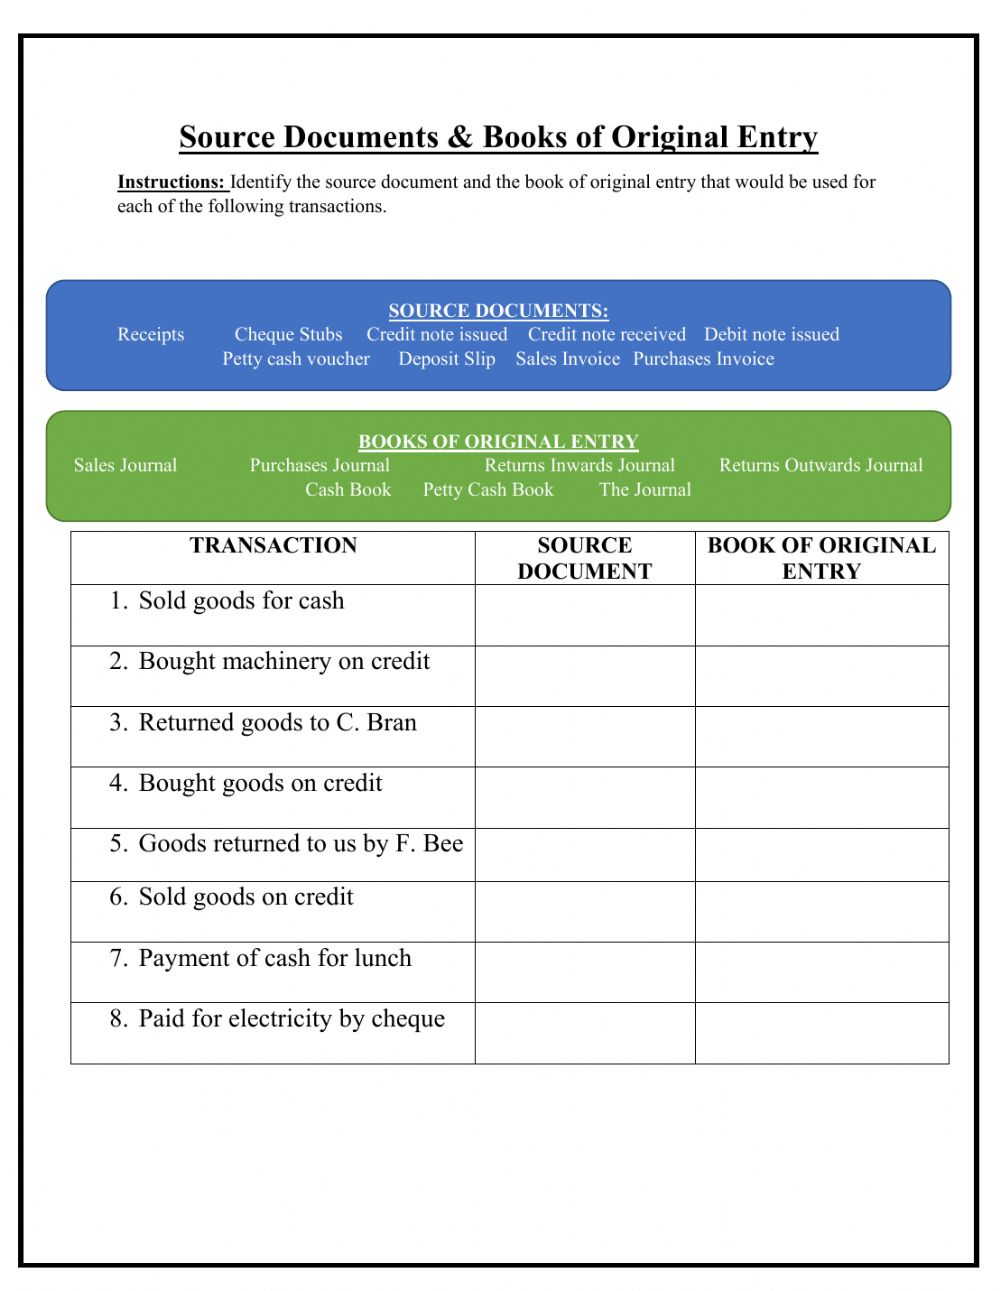 medium resolution of Source Documents and Books of Original Entry worksheet